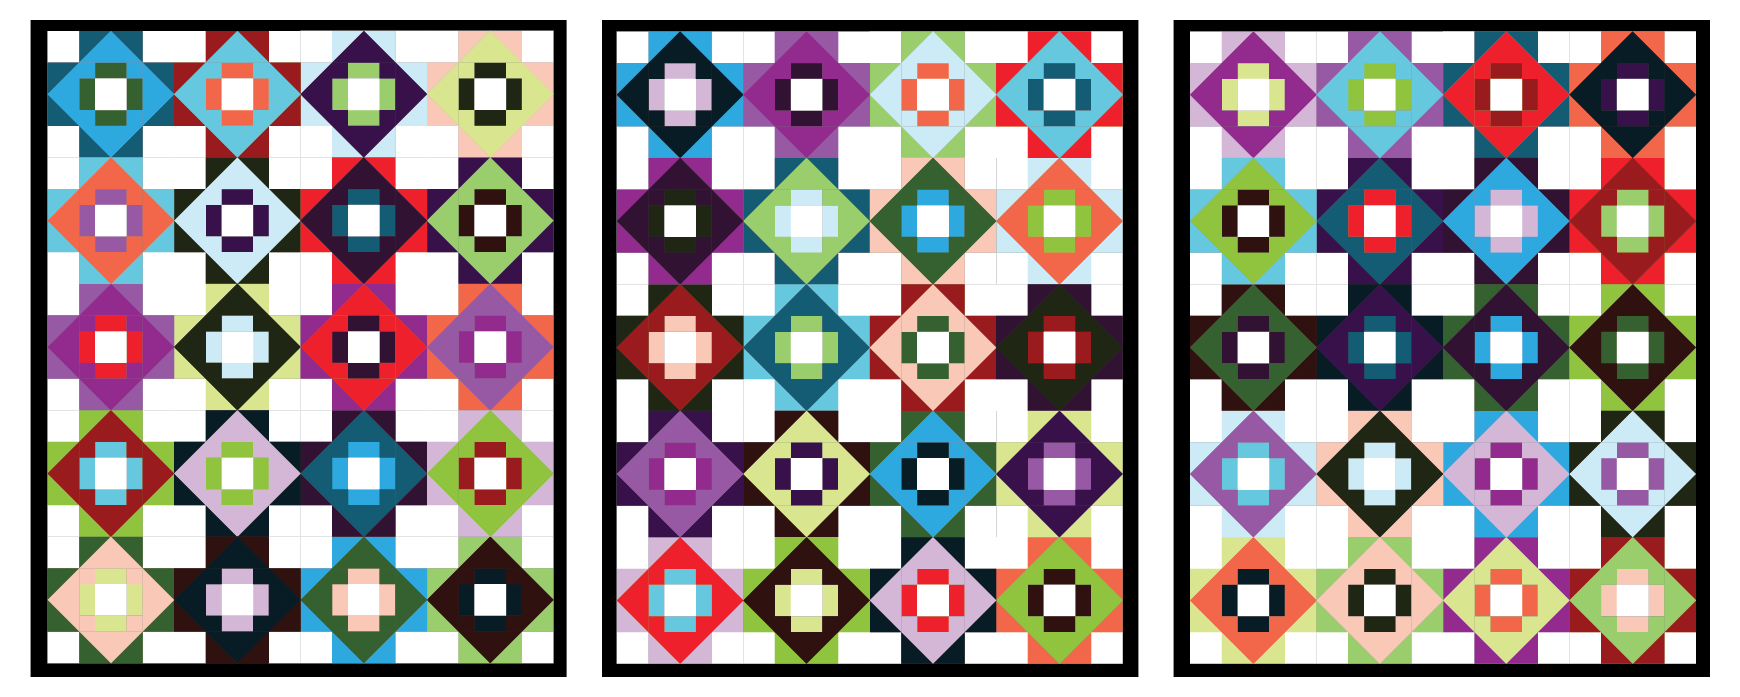 Meadowland Quilt mockups by Sewfinity